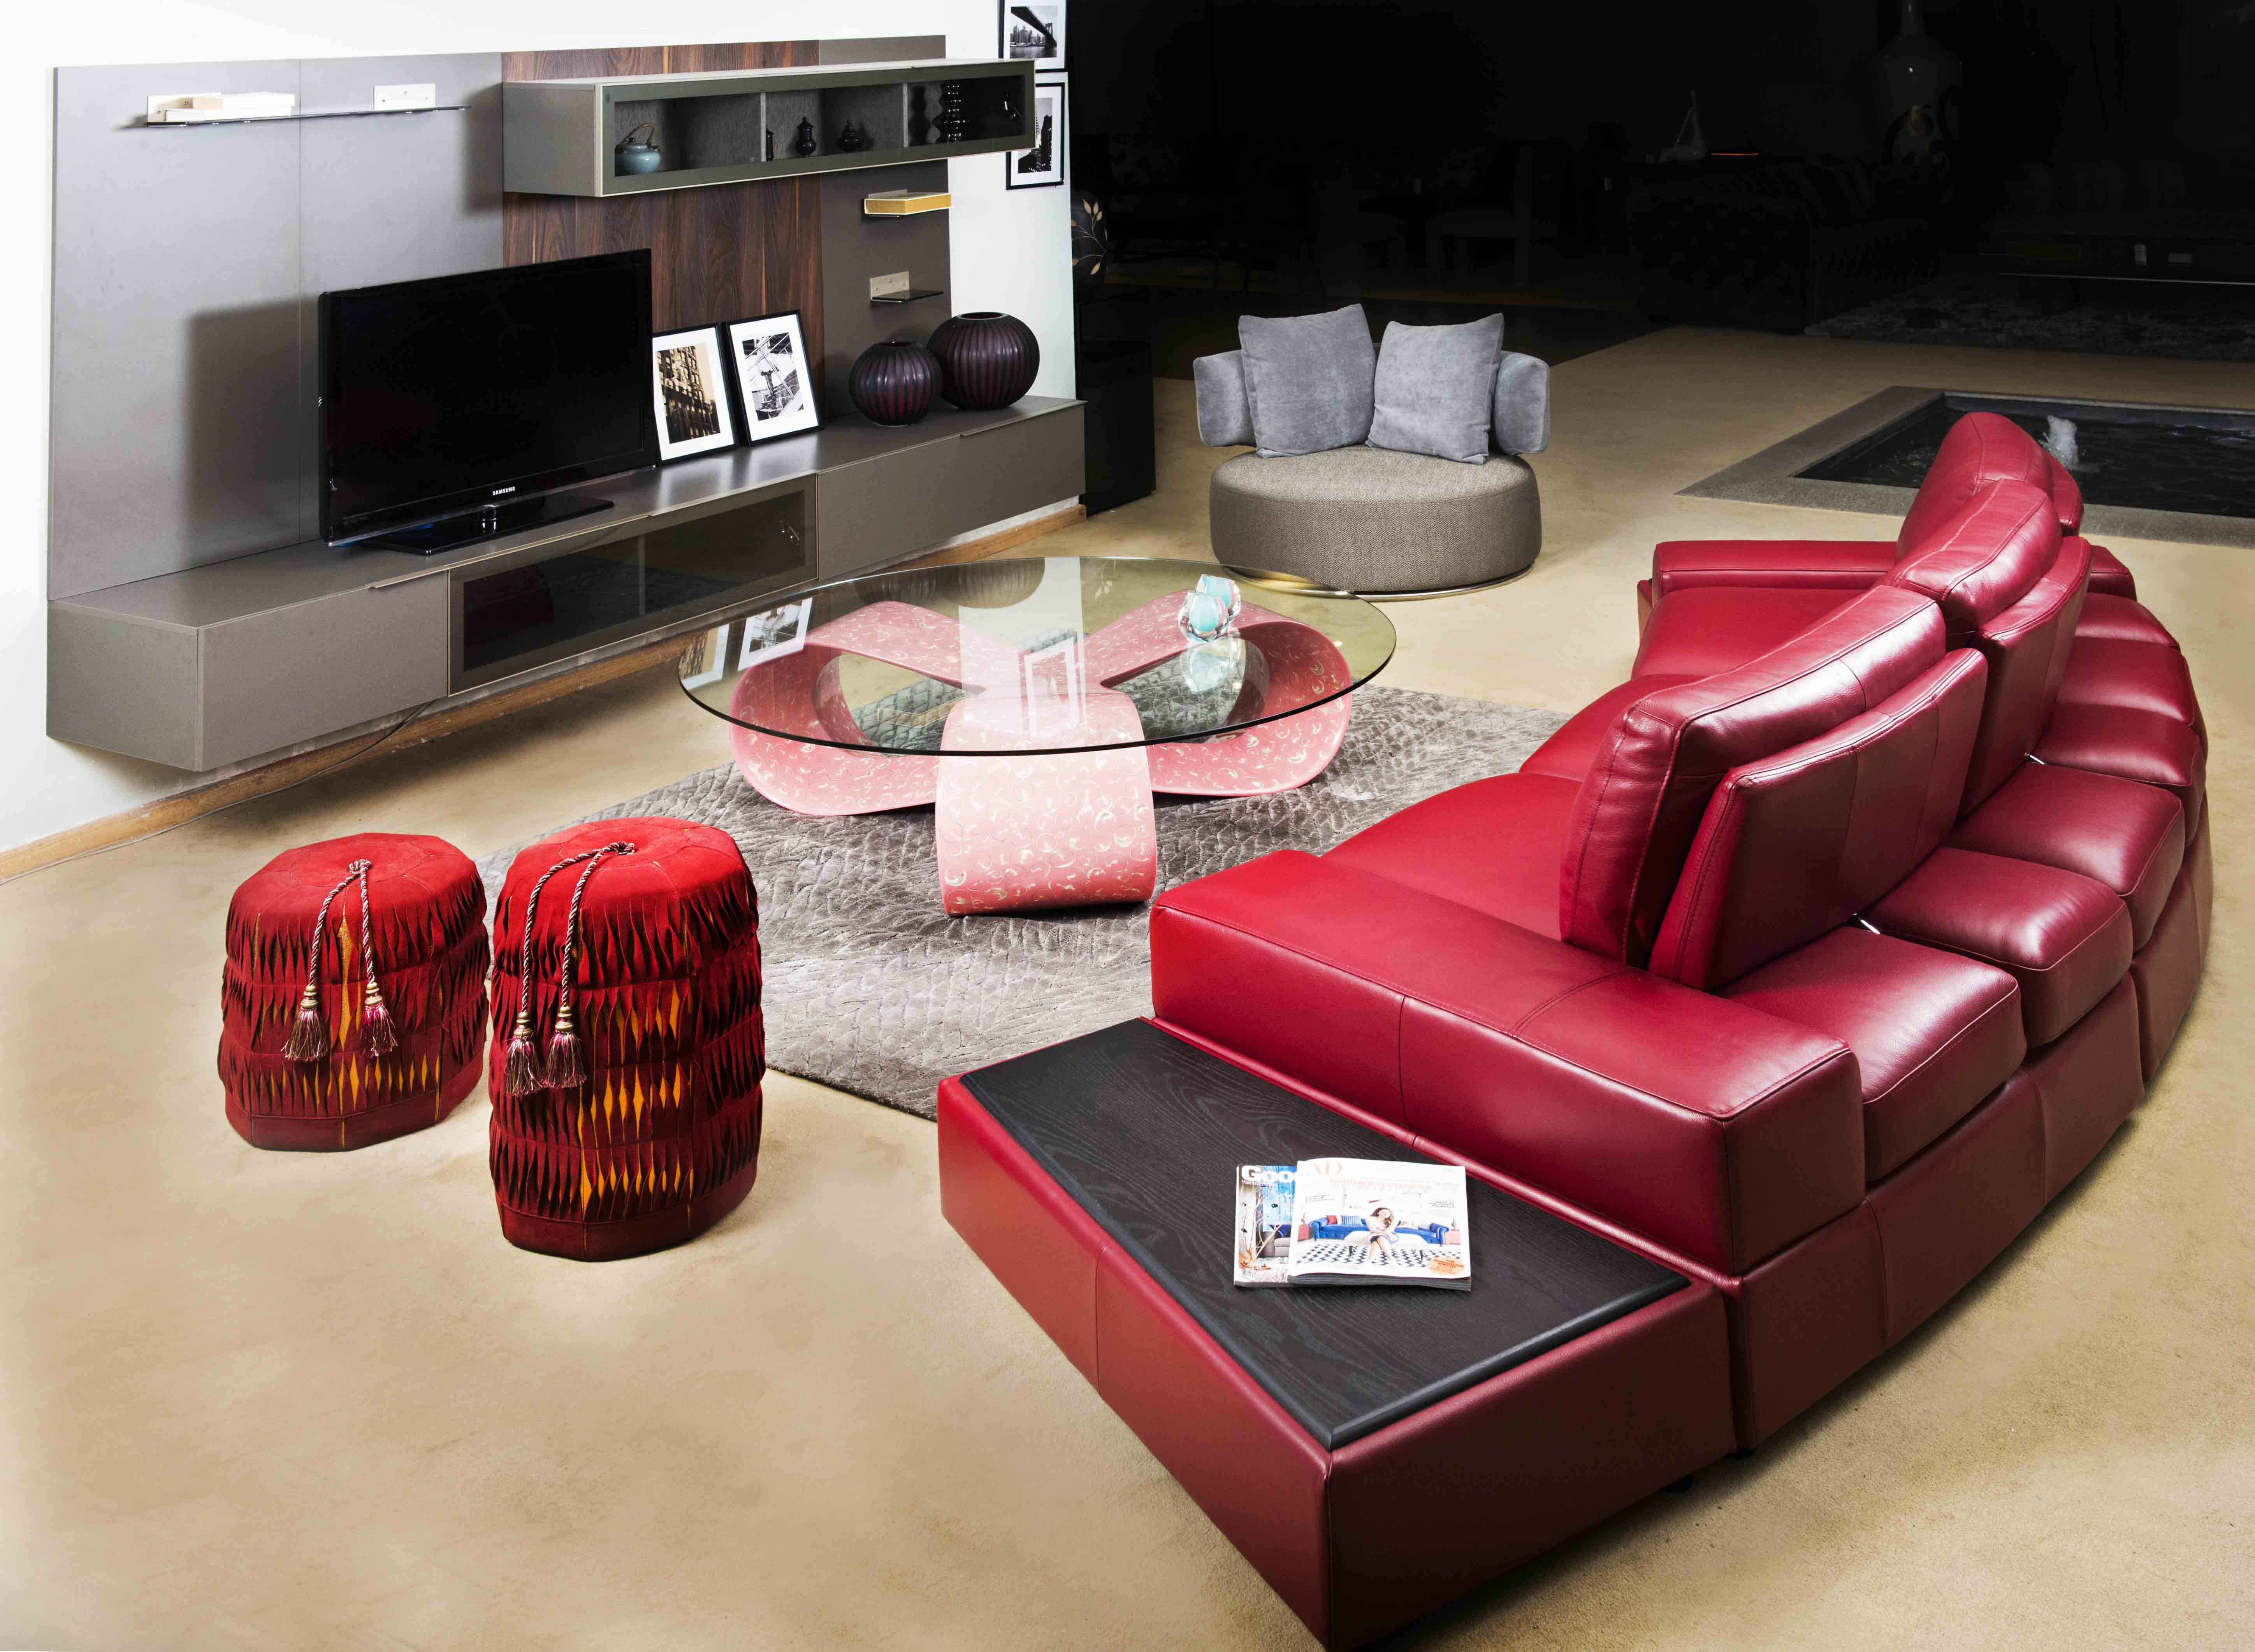 Luxury Living Room Set Up By IDUS Furniture